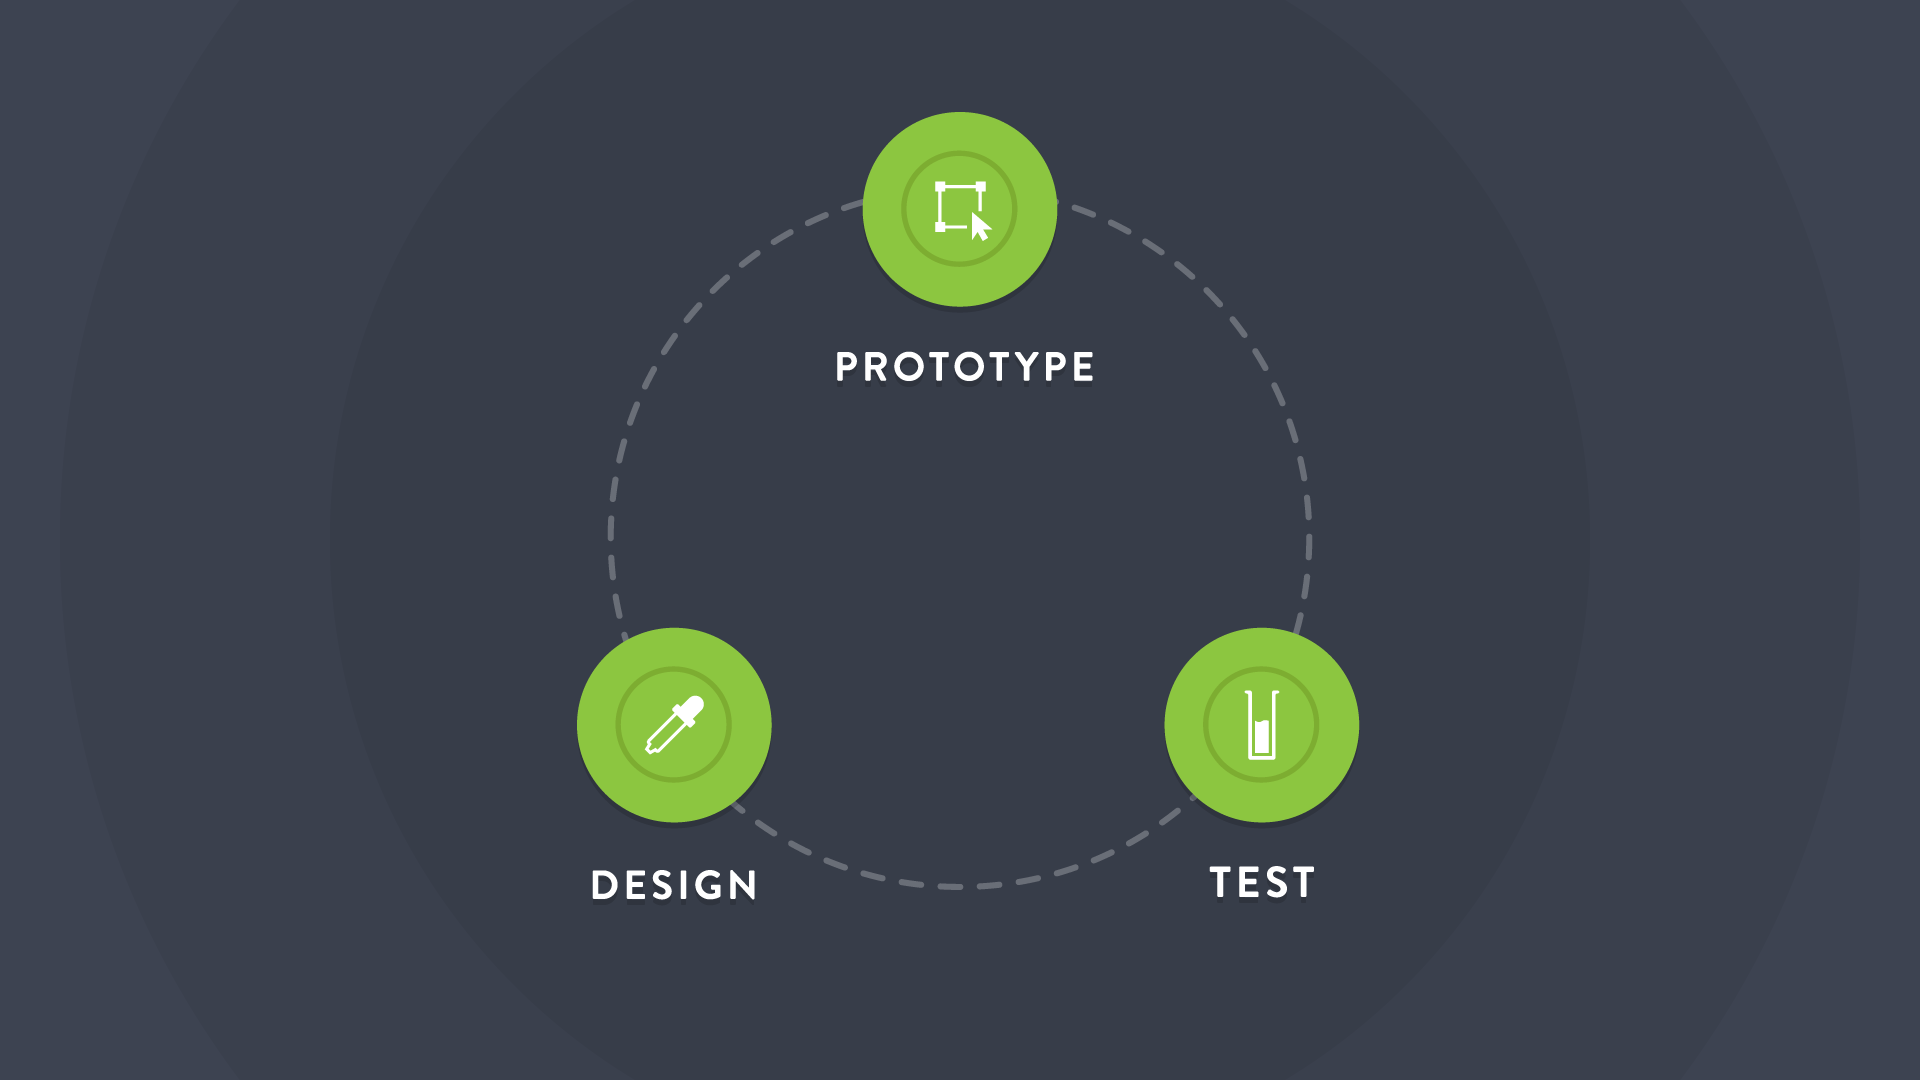 iterative-design-process